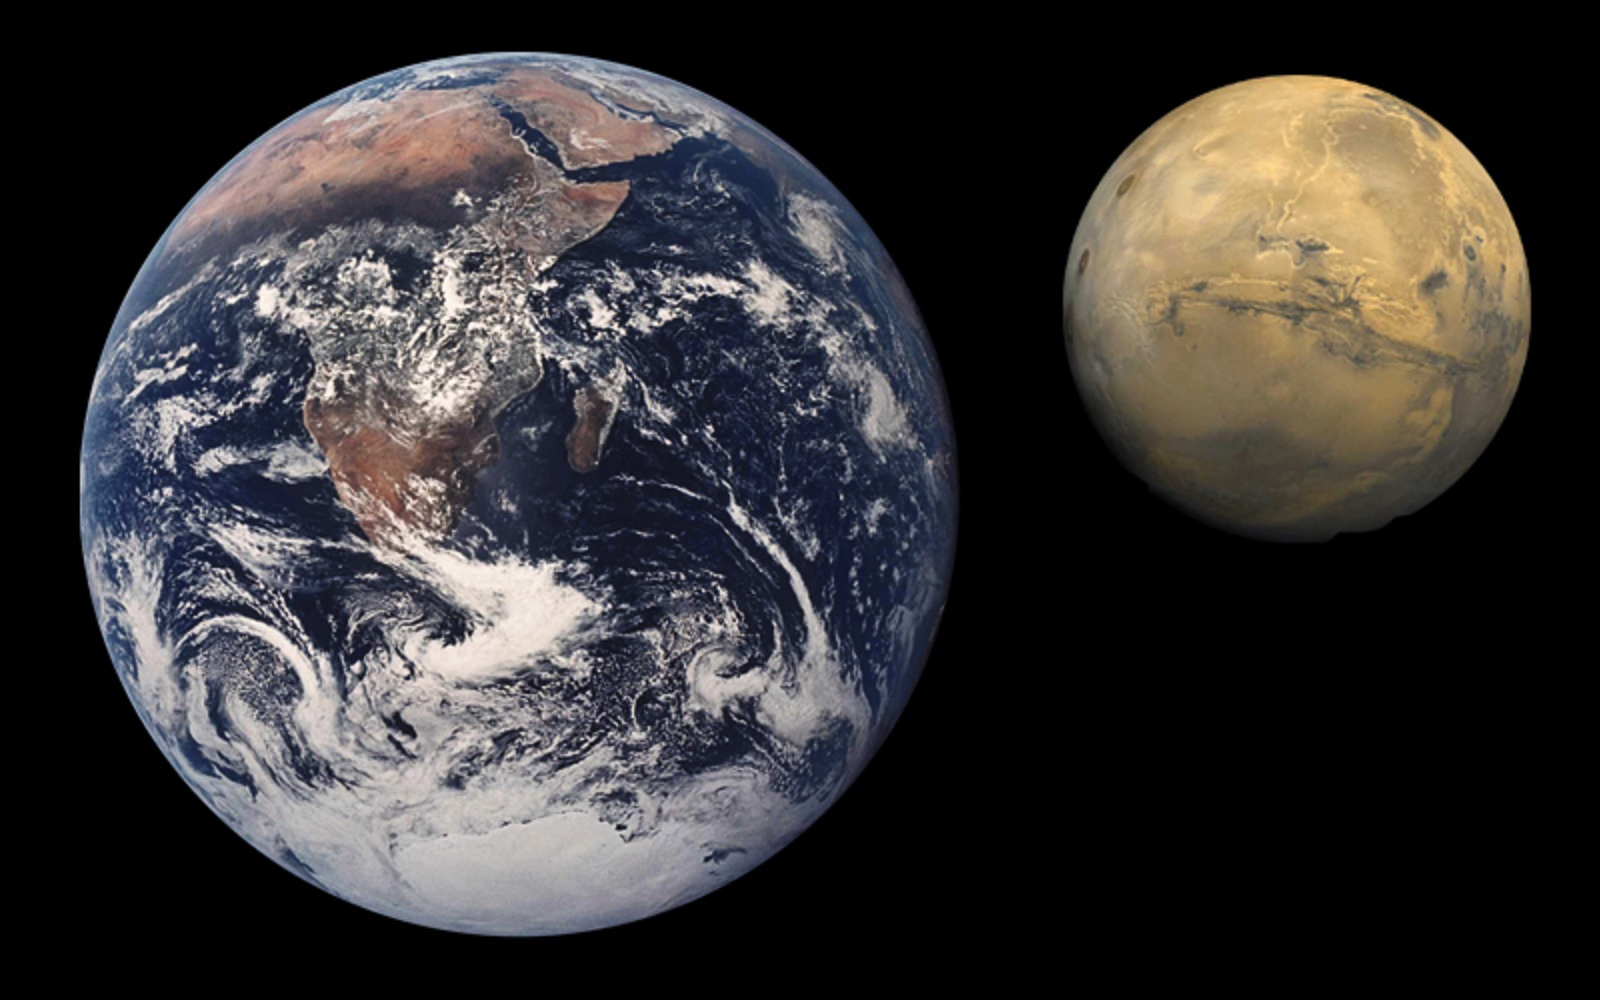 Venus Mars A Comparison Of The Earth To Sun Mercury Venus Moon Mars